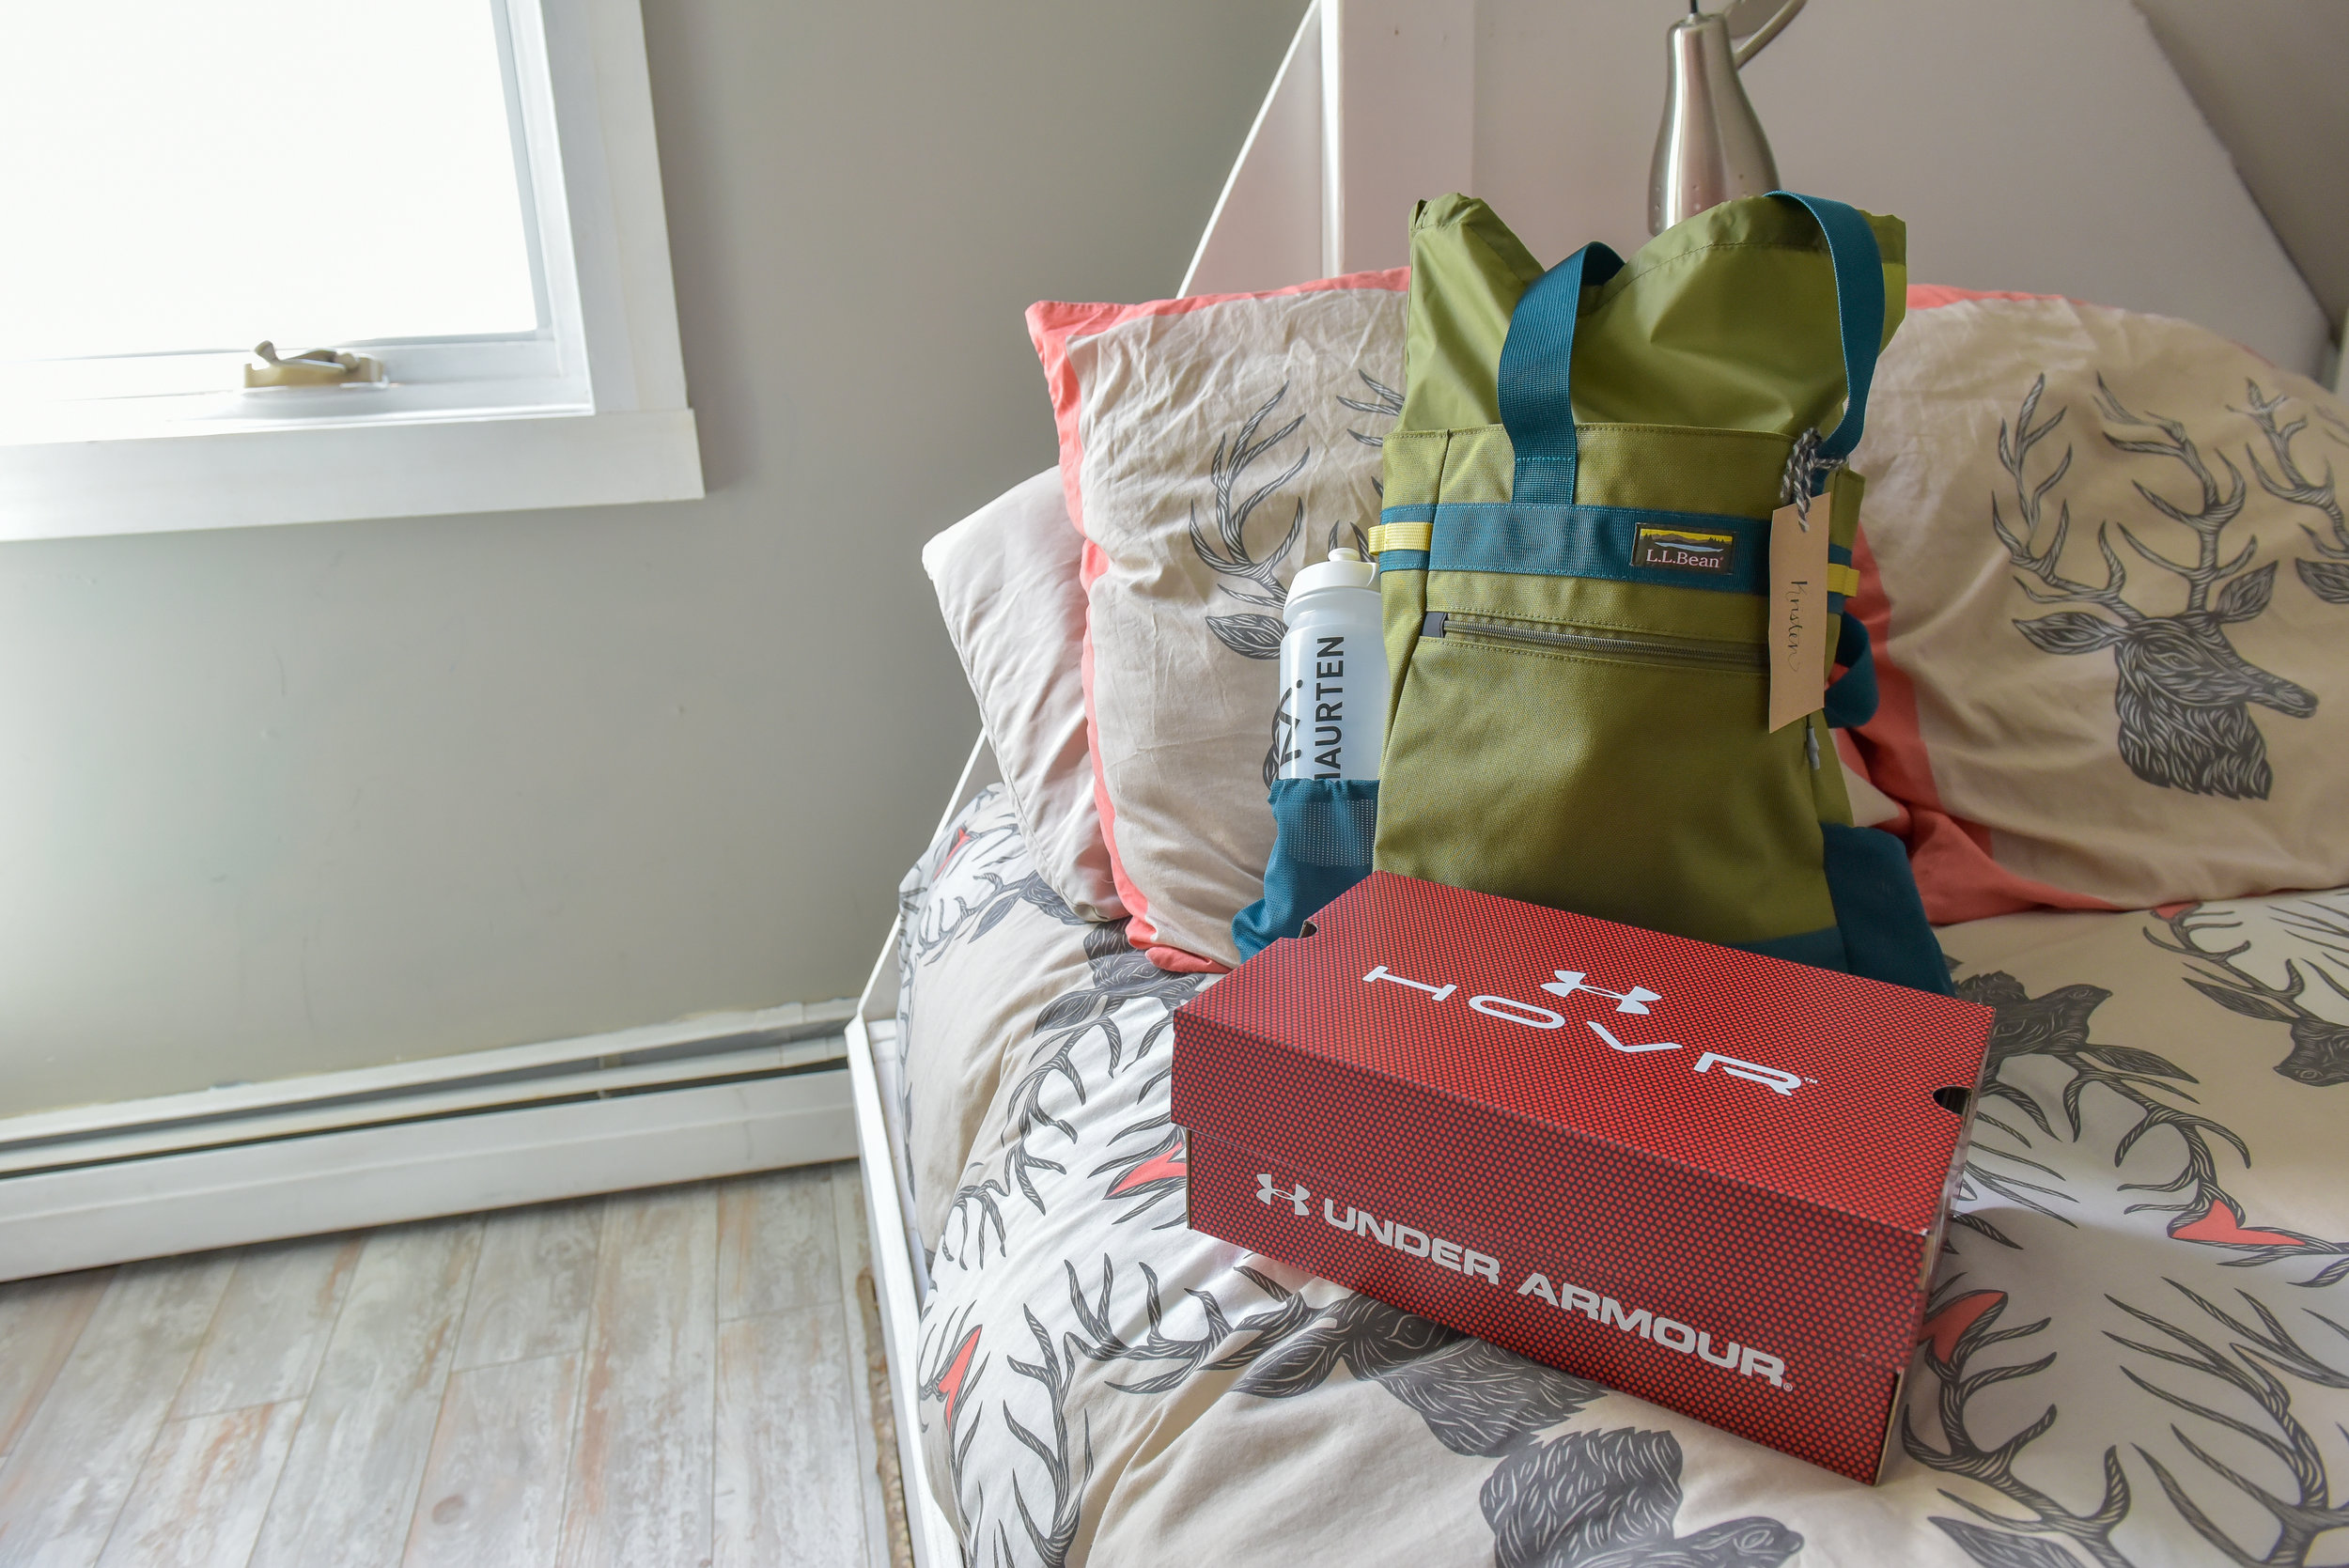 LL Bean swag bags with shoes for each participant from Under Armour. Photo Credit  Joe Viger